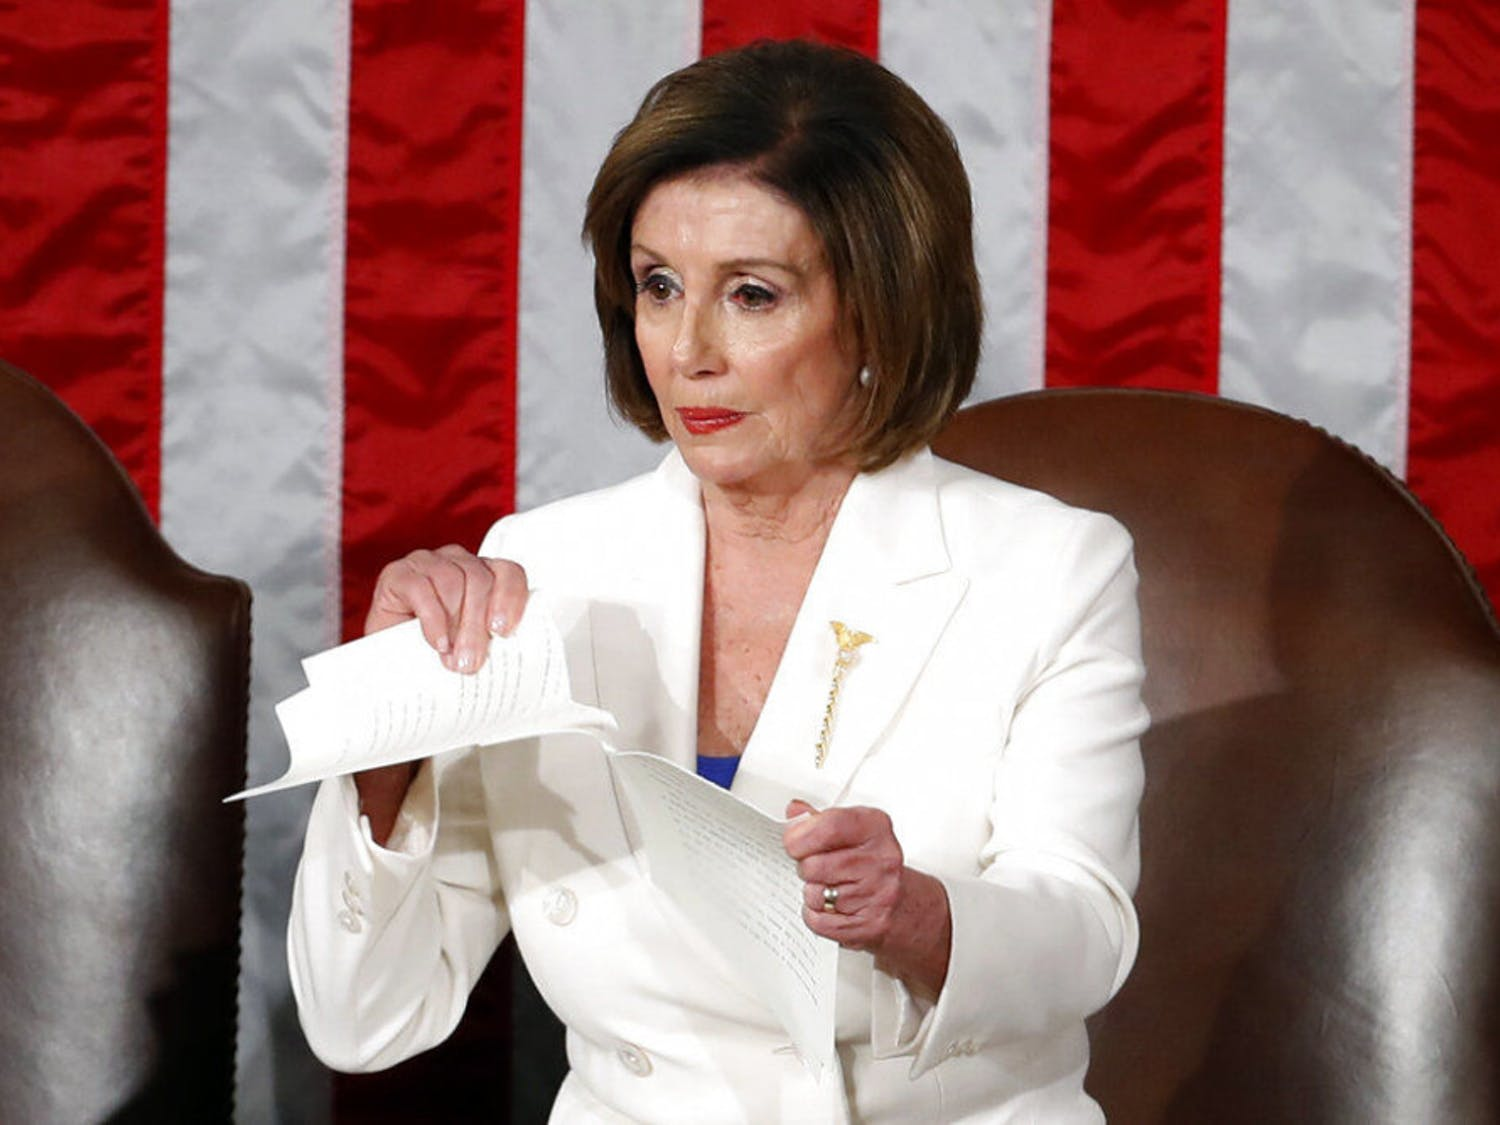 House Speaker Nancy Pelosi of Calif., tears her copy of President Donald Trump's State of the Union address after he delivered it to a joint session of Congress on Capitol Hill in Washington, Tuesday, Feb. 4, 2020. (AP Photo/Alex Brandon)